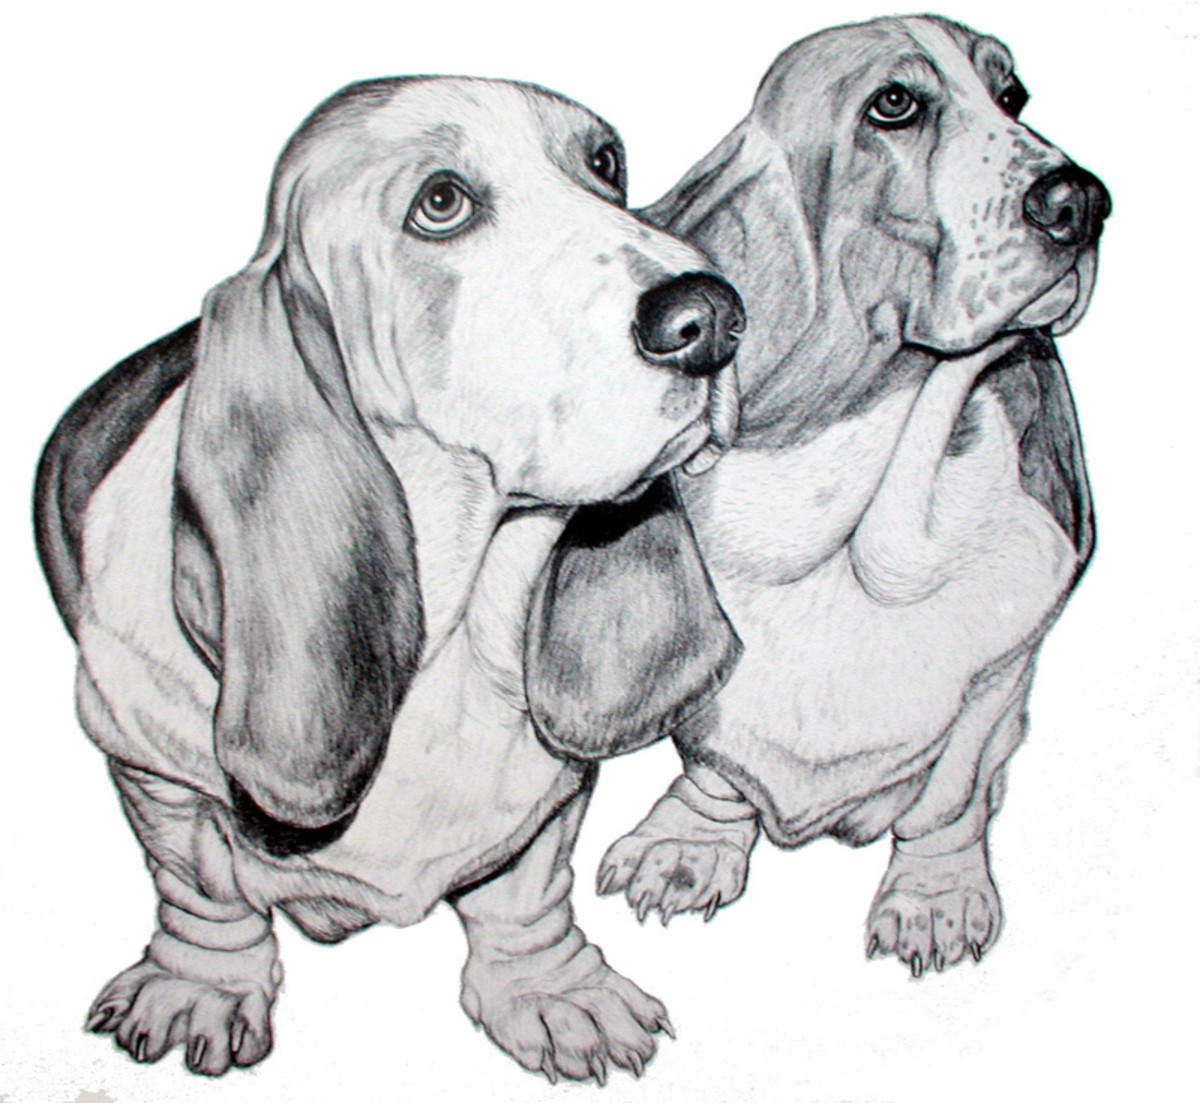 Two Bassets   Pencil rendering 11x14 inches  Limited edition of 125 prints  $15 each